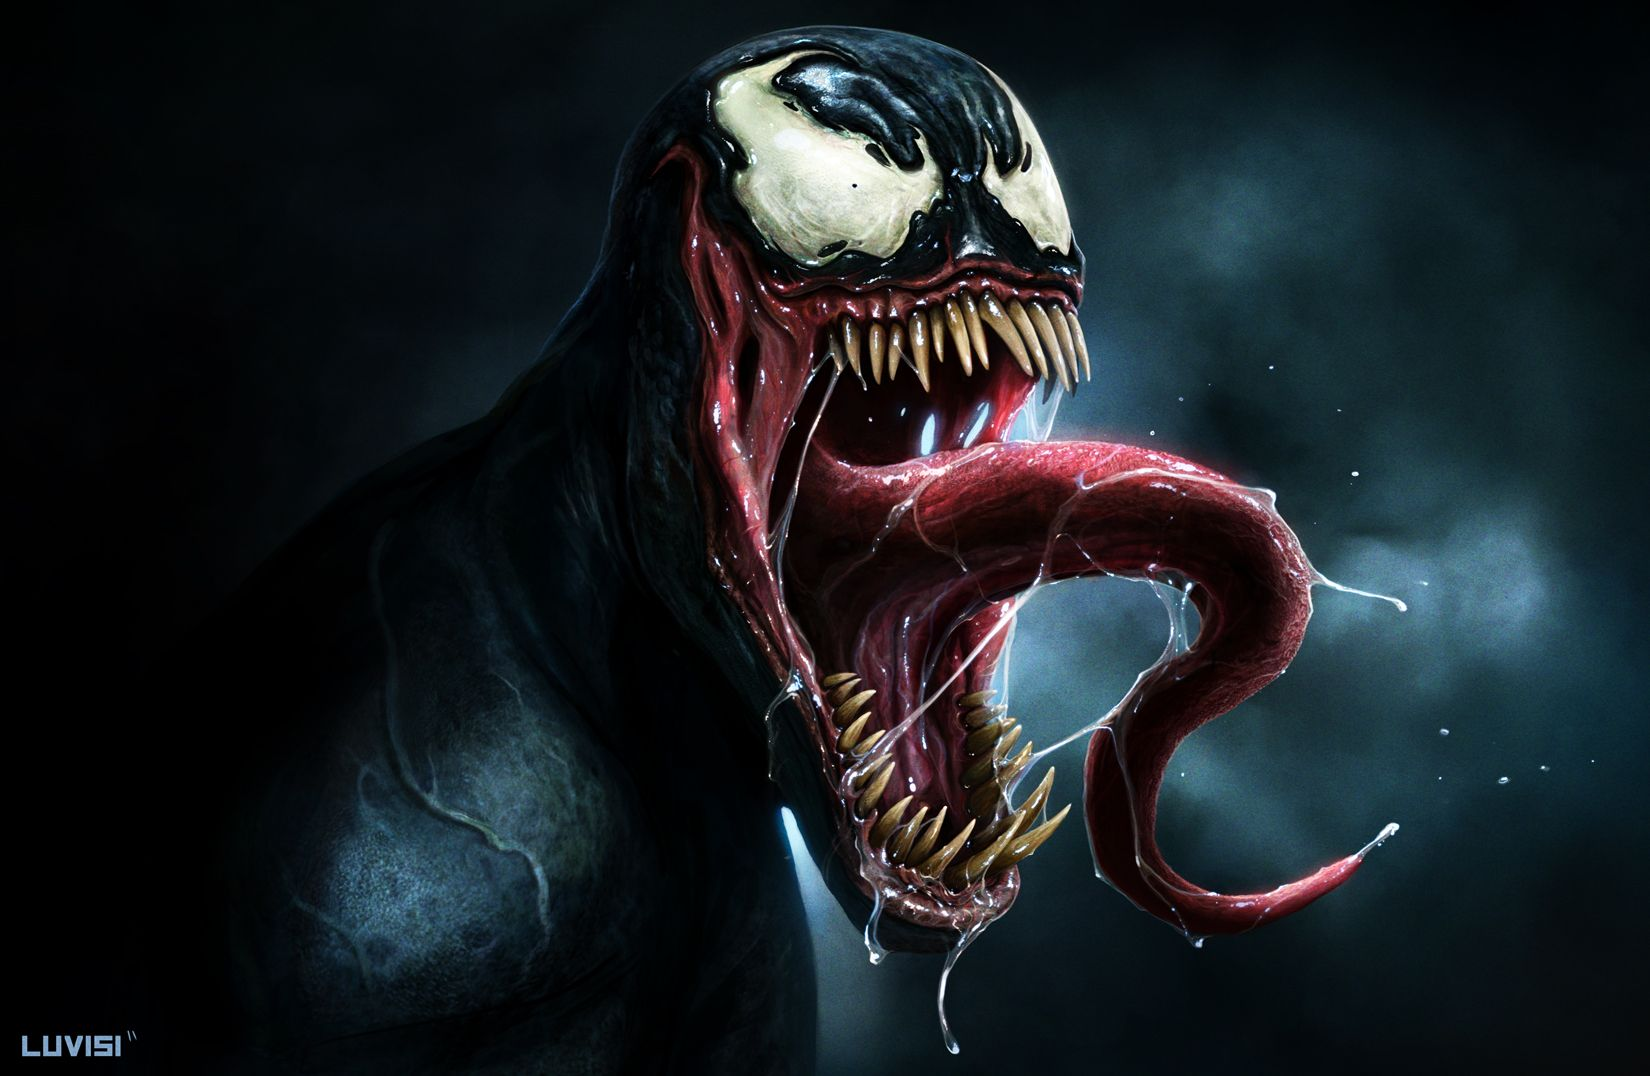 Real Venom HD Wallpaper | Wallpaper | Venom spiderman, Marvel venom, Venom movie